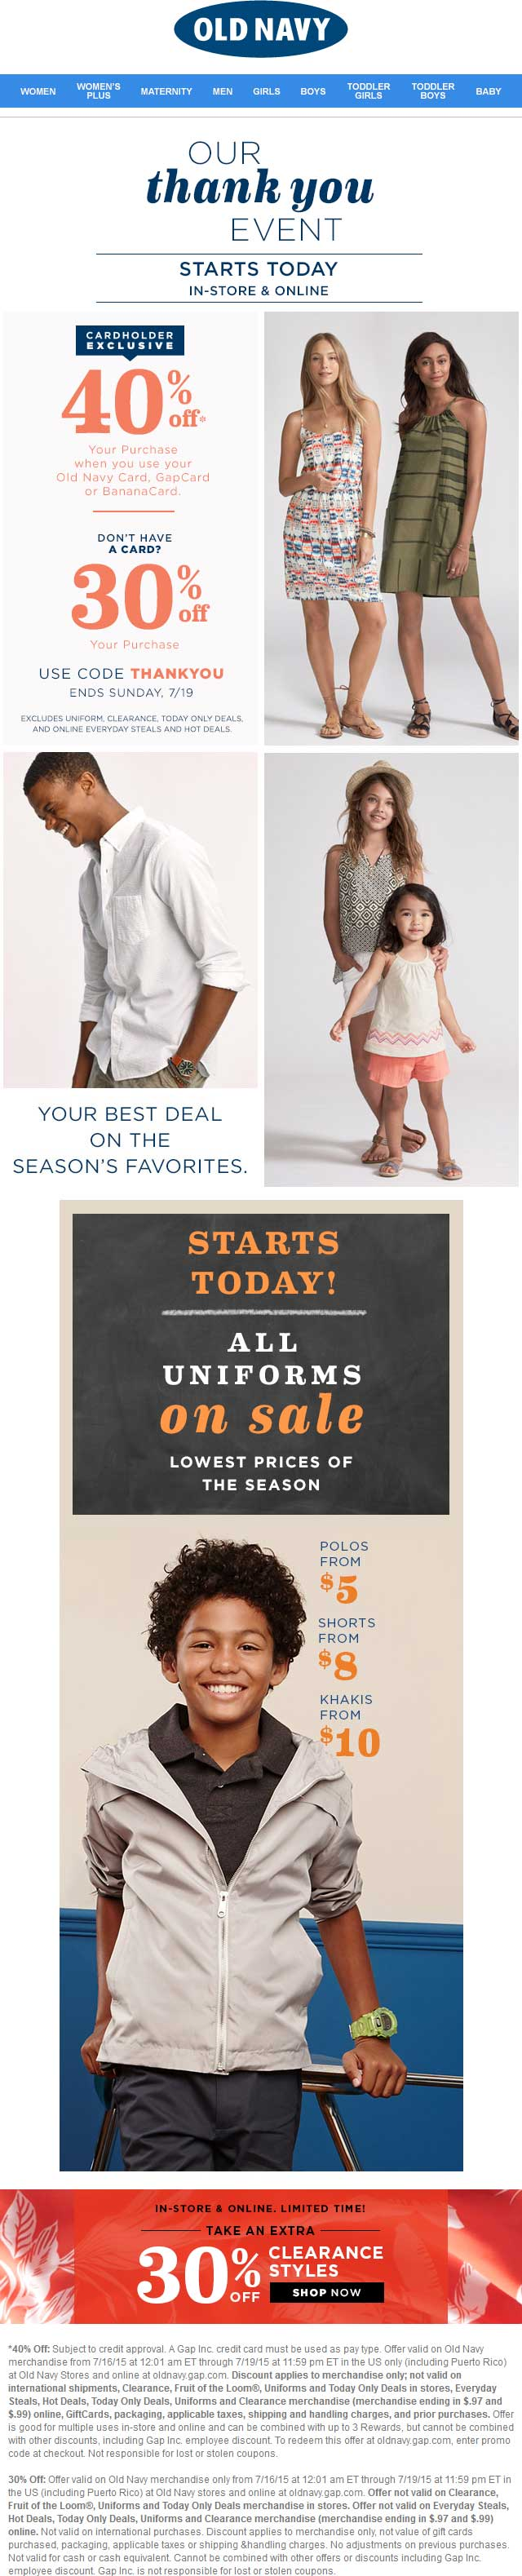 Old Navy Coupon November 2018 30% off at Old Navy, or online via promo code THANKYOU